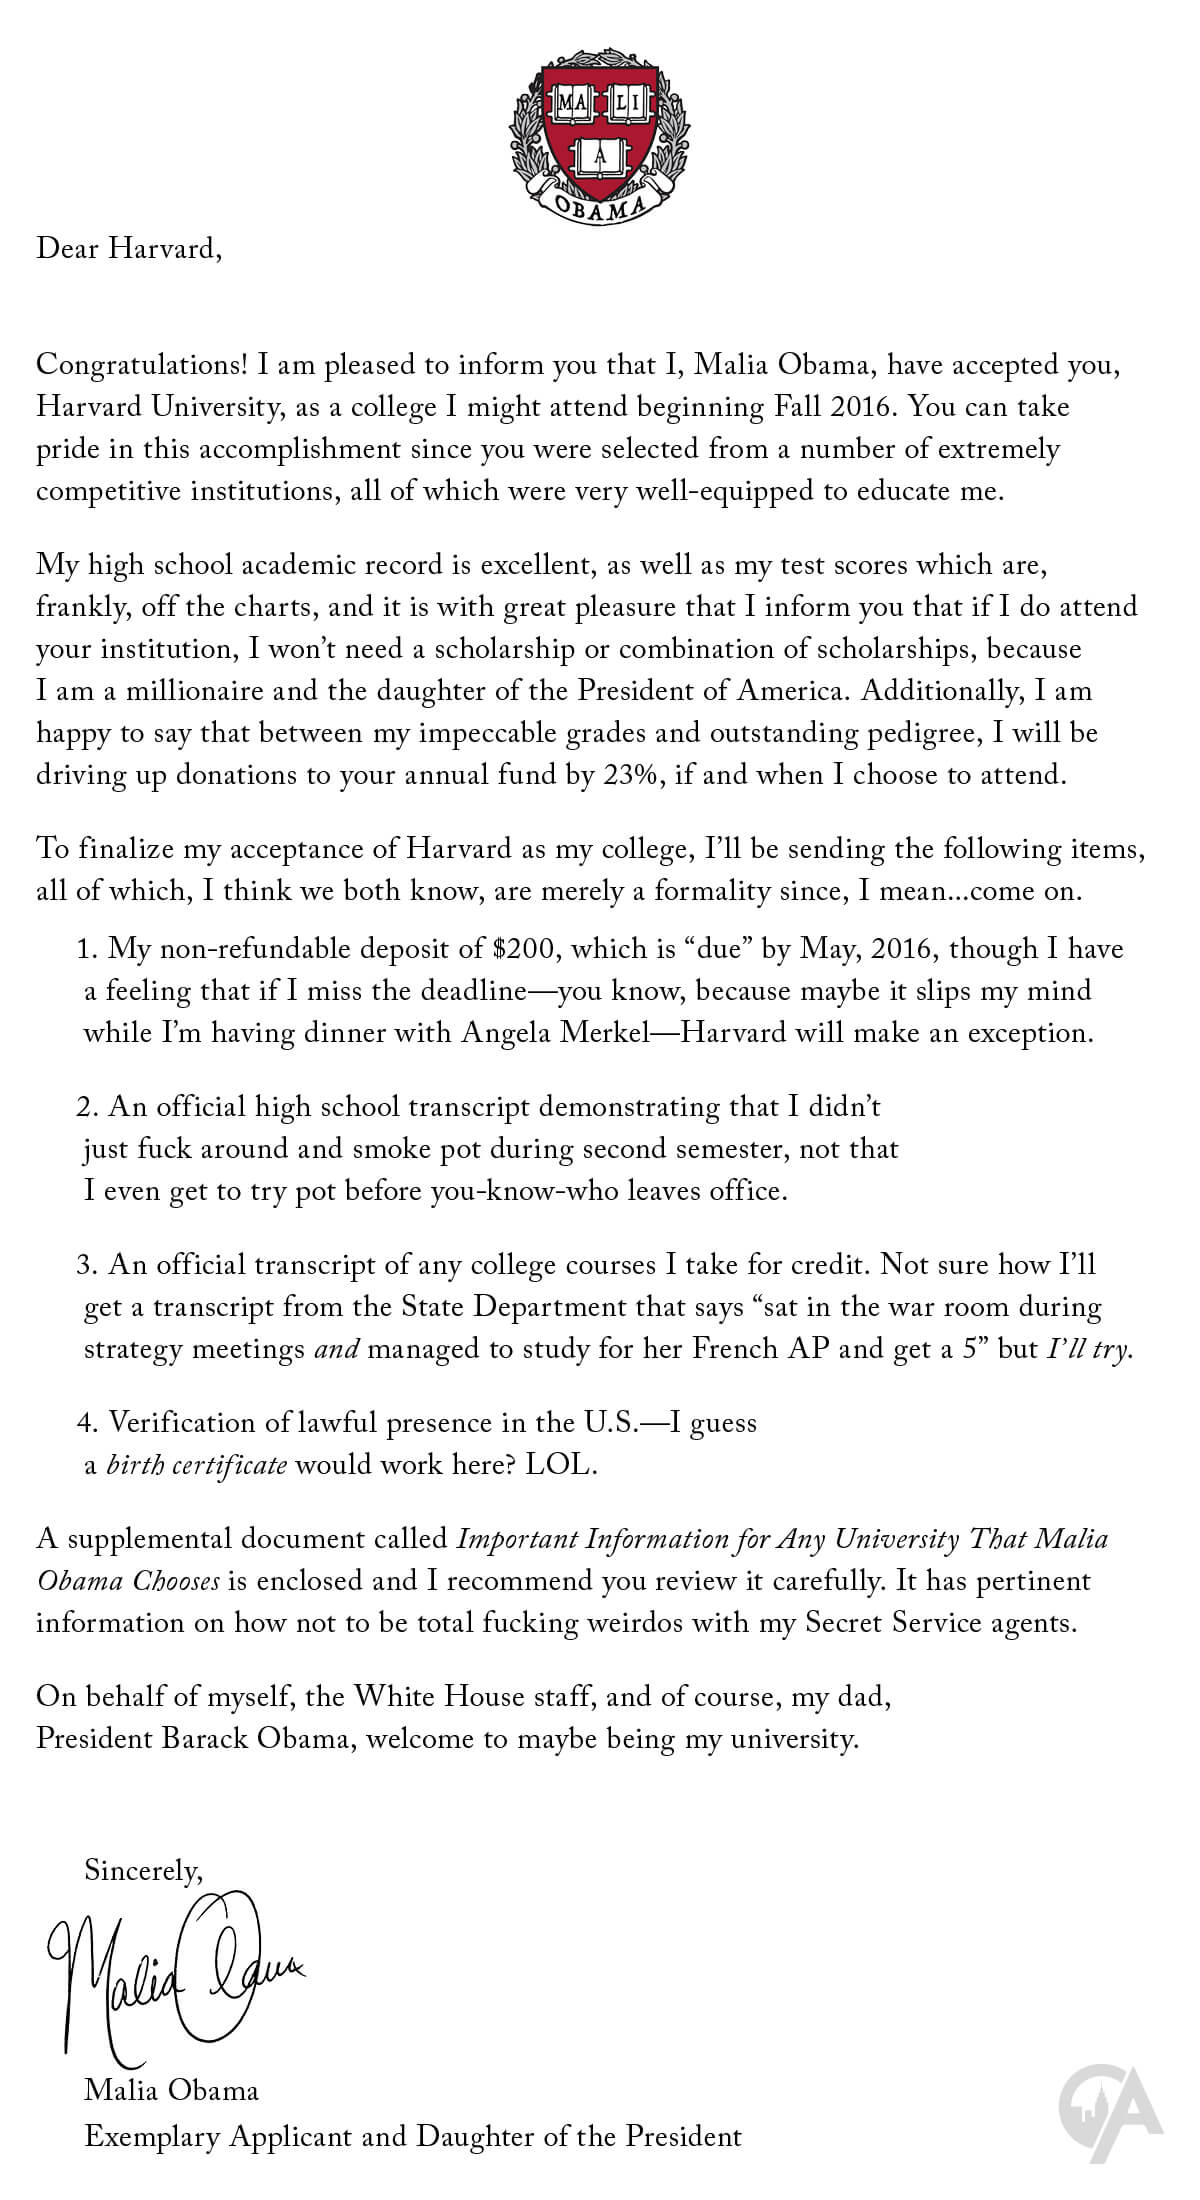 003 Harvard Acceptance Essays Essay Example Malia Obama Sends Letter To Maliaobamasacceptancelettertoha College Application That Were Frightening 50 Successful Pdf Free 2017 3rd Edition Full